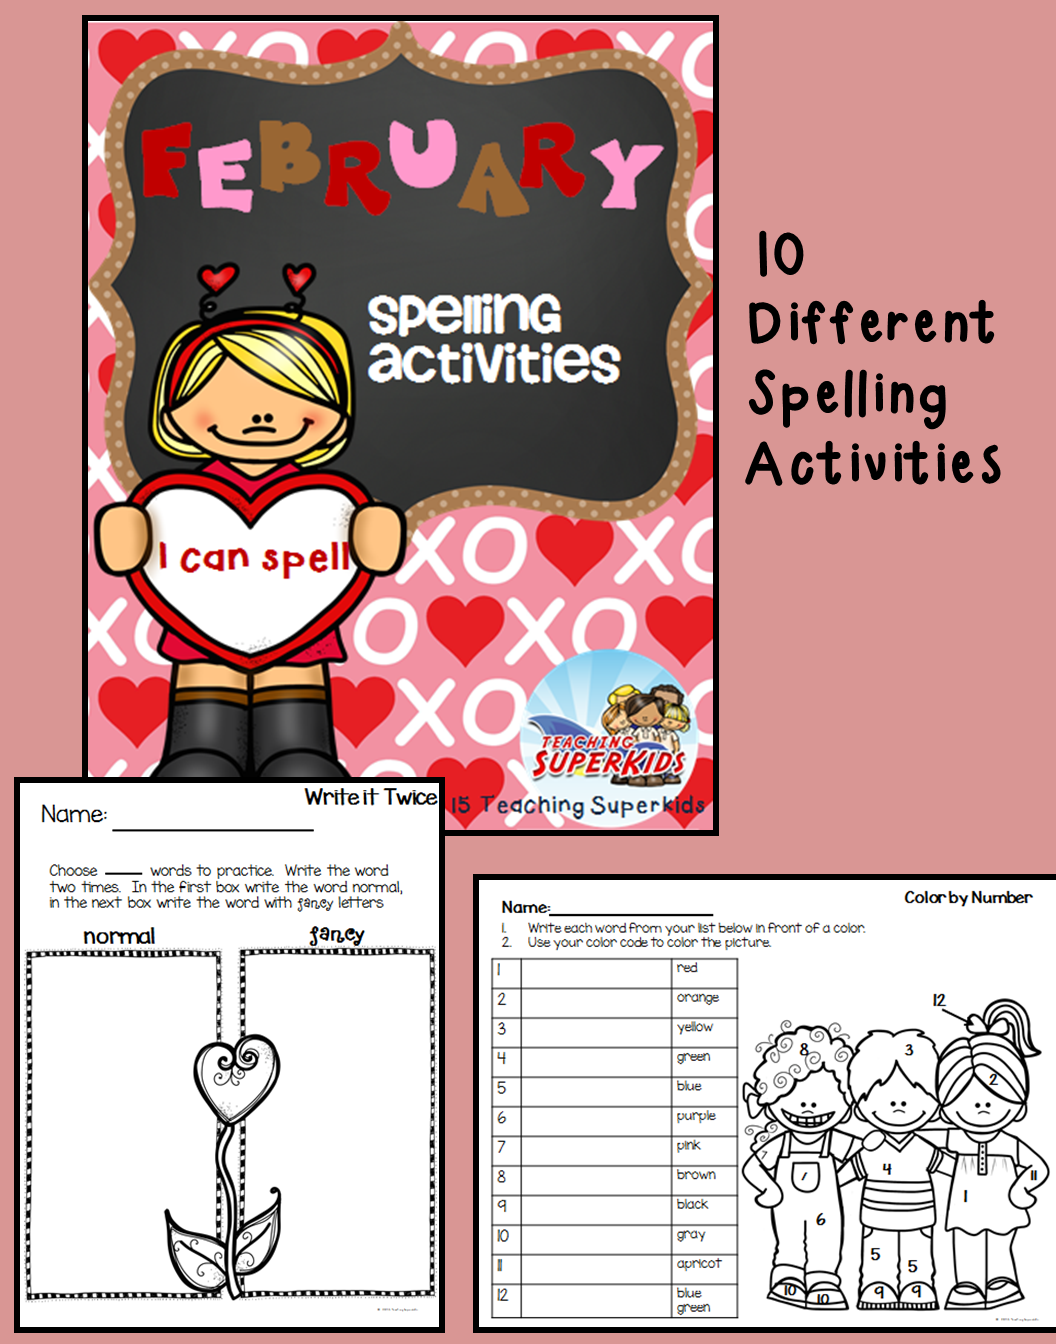 February Spelling Activities